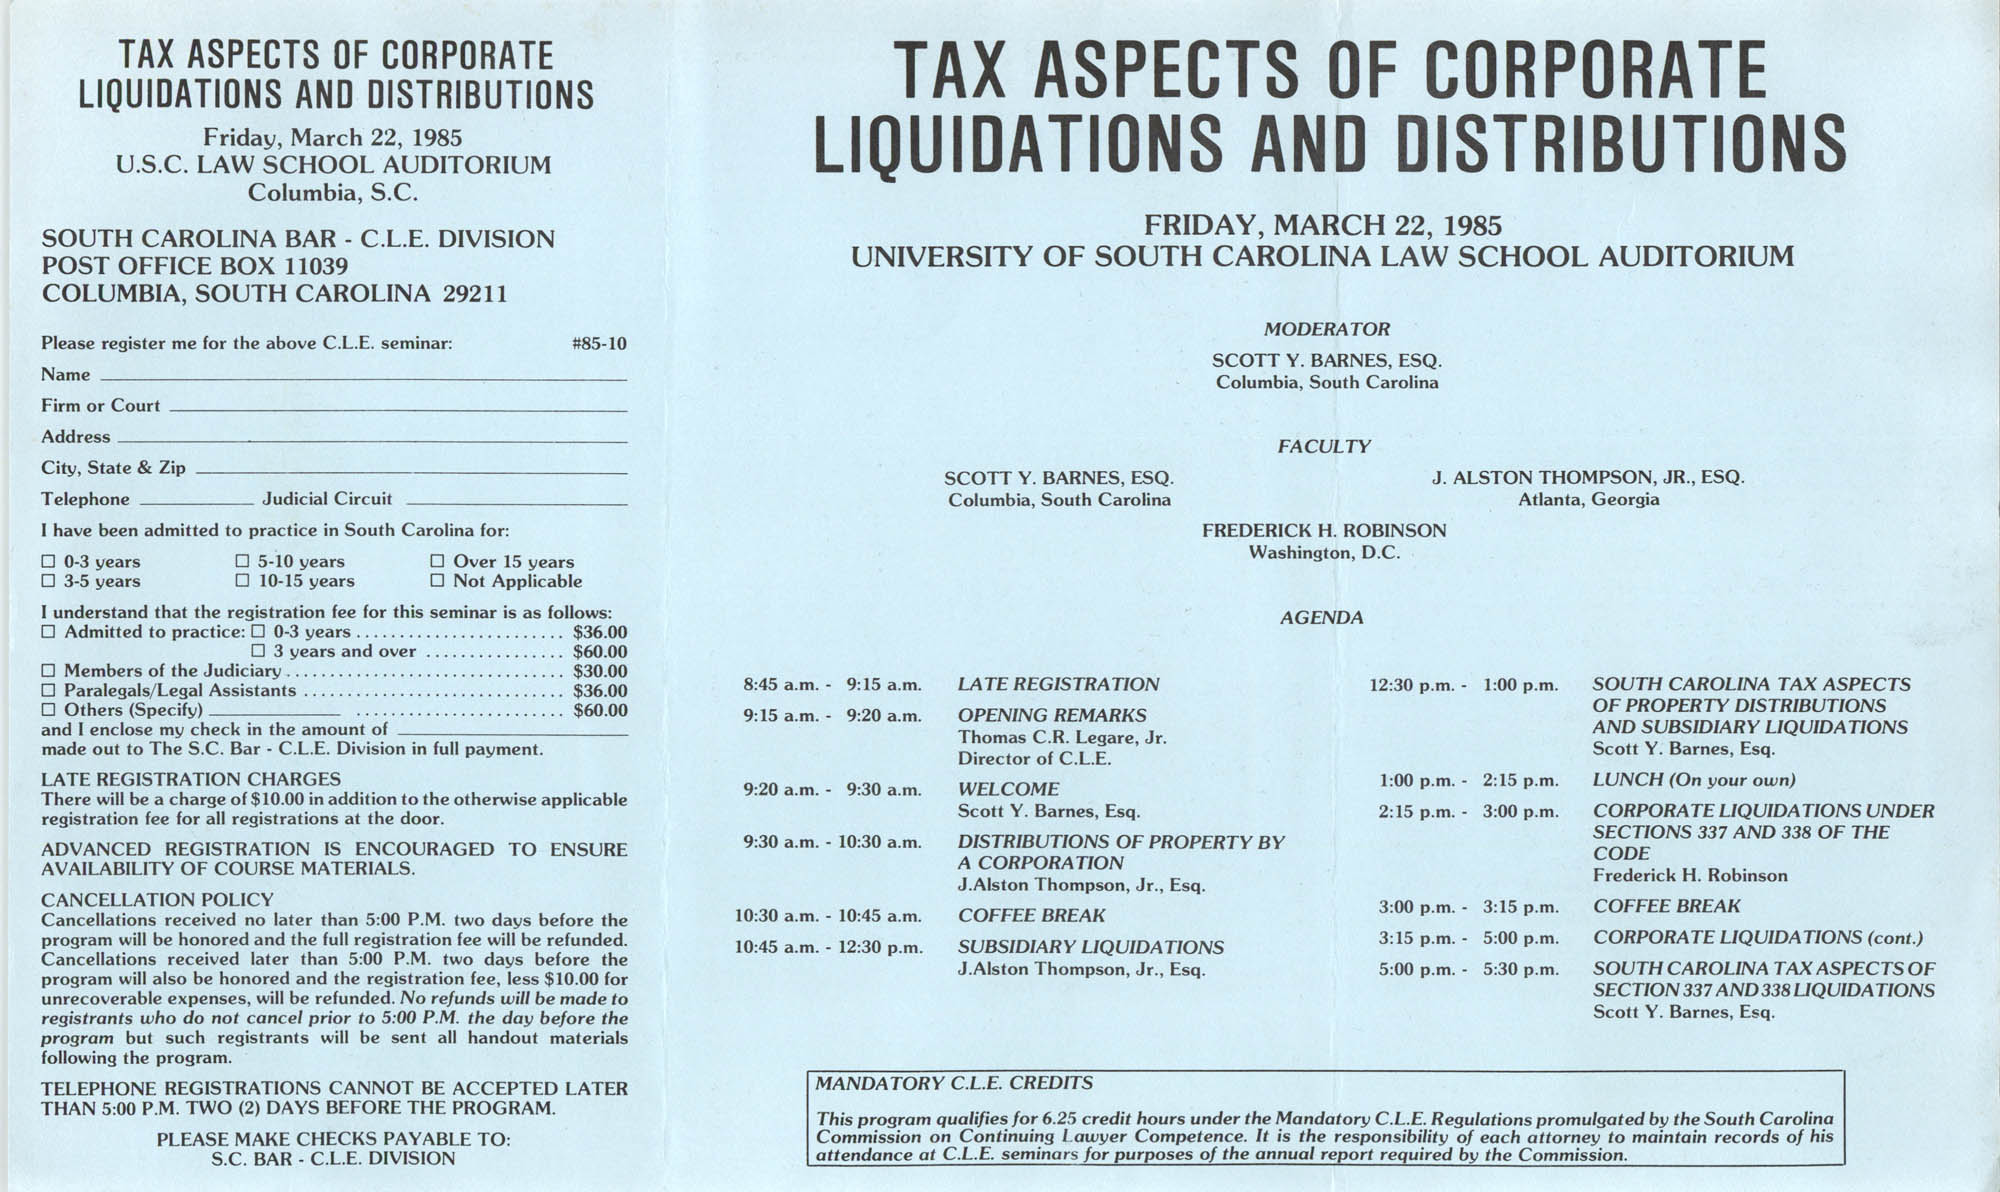 Tax Aspects of Corporate Liquidations and Distributions, Continuing Legal Education Pamphlet, March 22, 1985